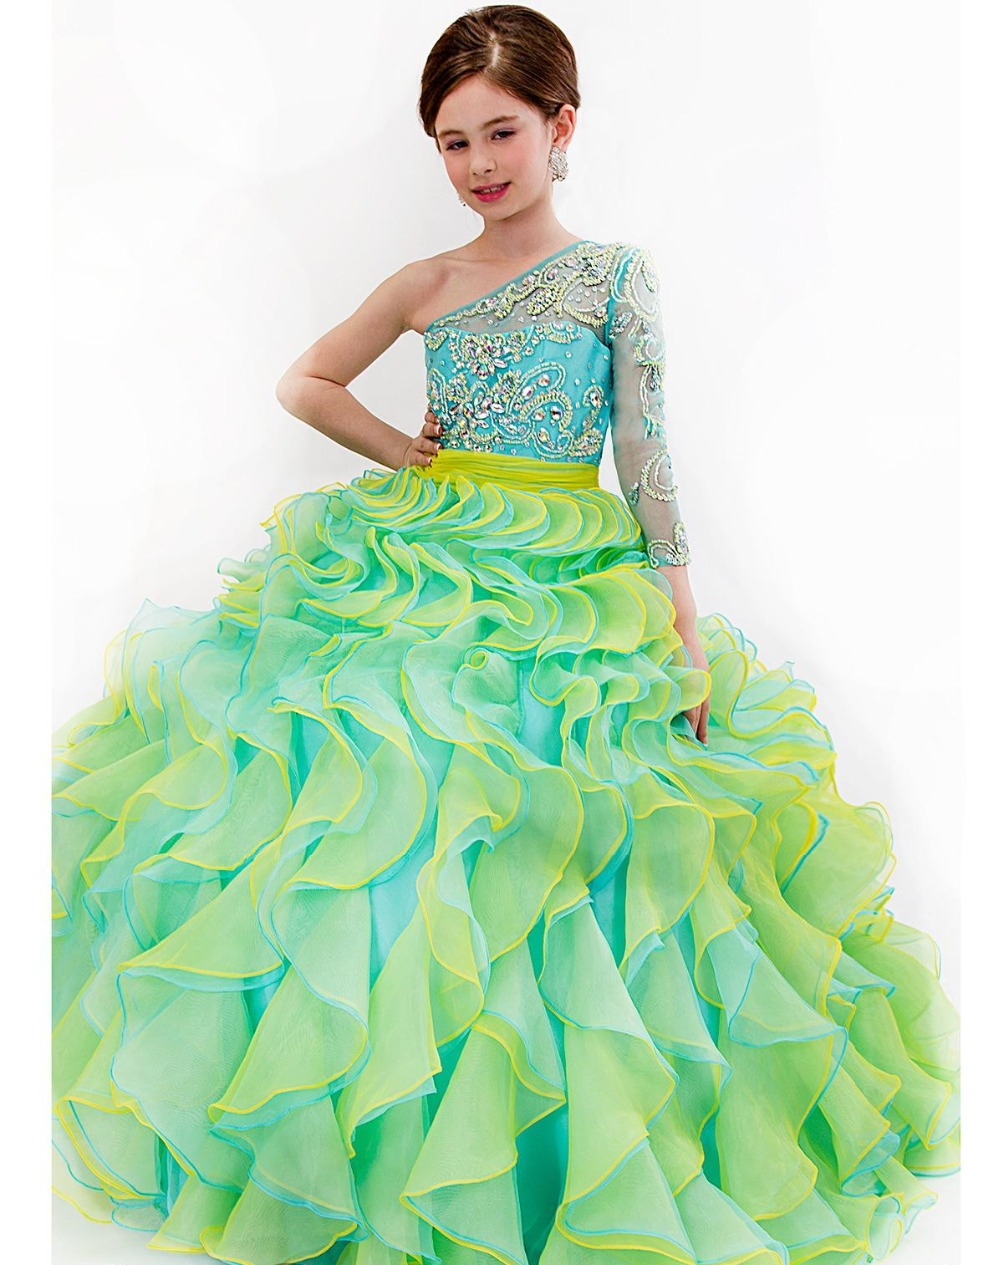 Bal gowns for kids reviews online shopping bal gowns for kids princess kids ruffled pageant dress one shoulder sweetheart little girl bridesmaid dresses with long sleeve robe de bal fille ombrellifo Image collections